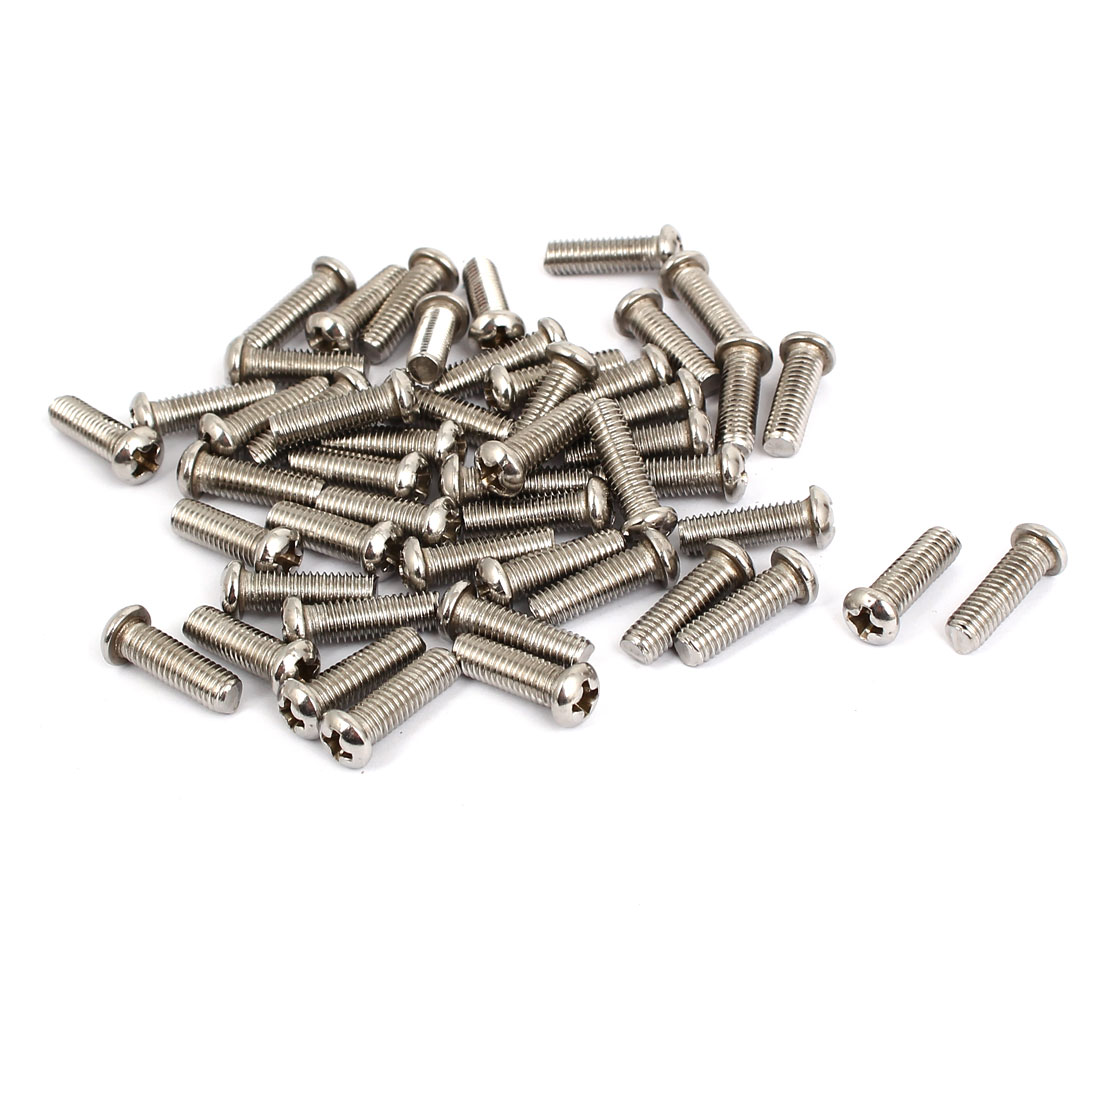 M5x16mm Stainless Steel Phillips Round Pan Head Machine Screws 50pcs